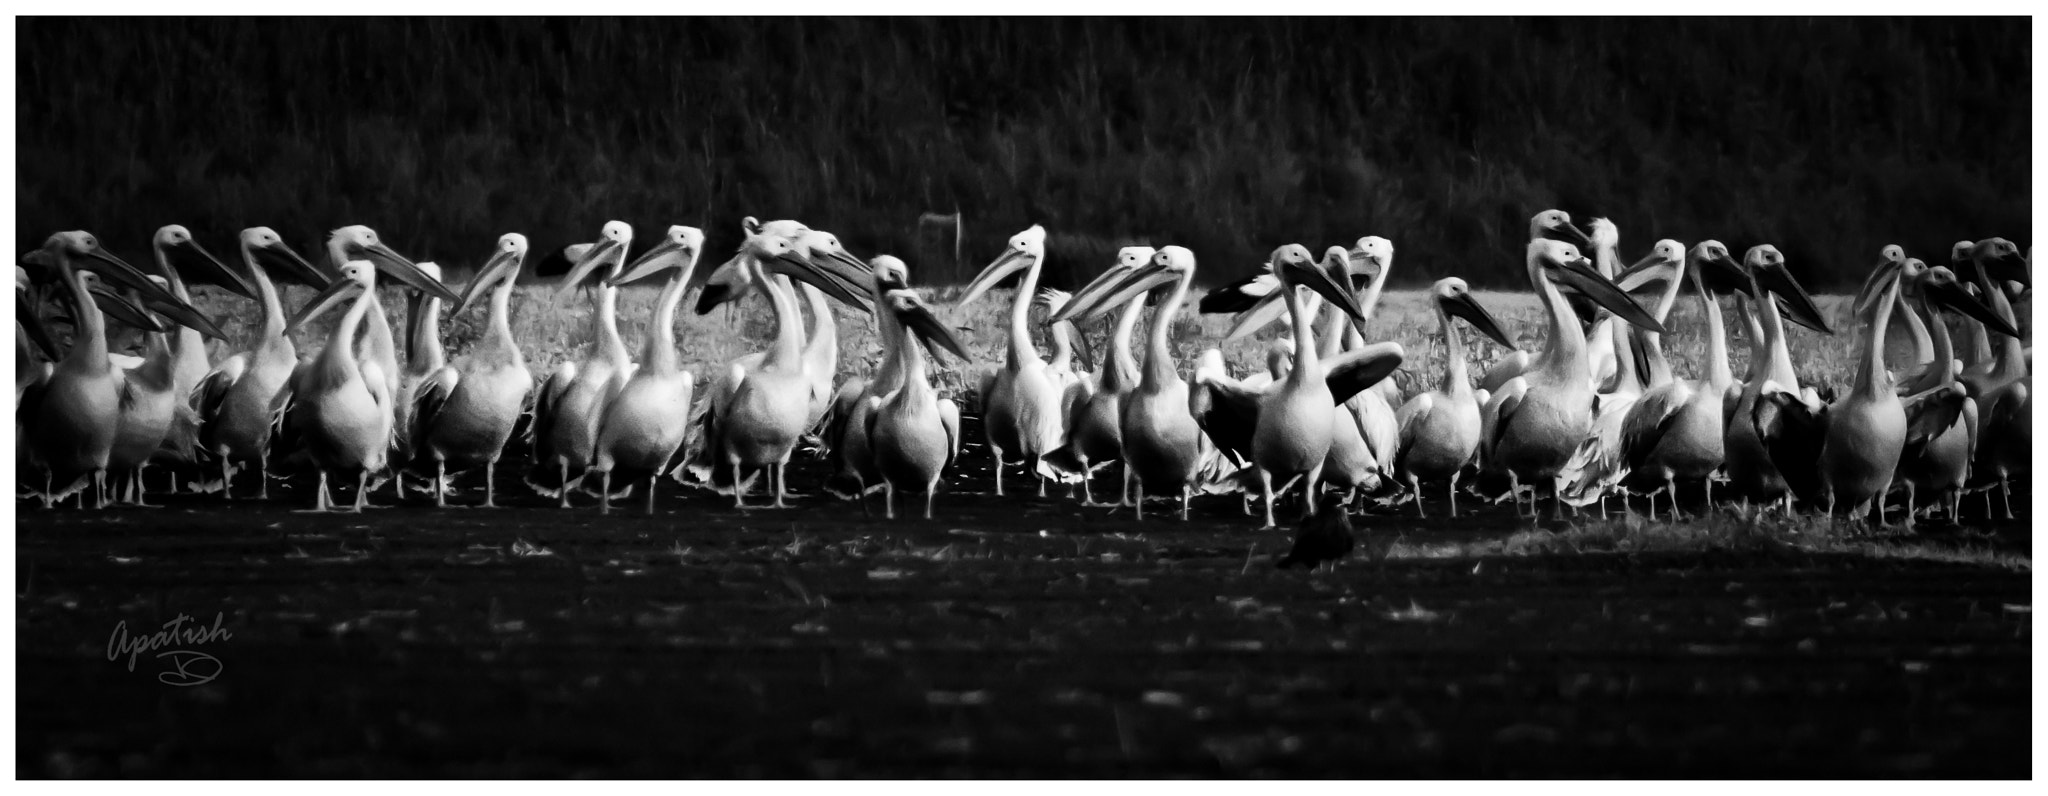 Photograph Pelicans, class of 2013 by Ariel Patish on 500px